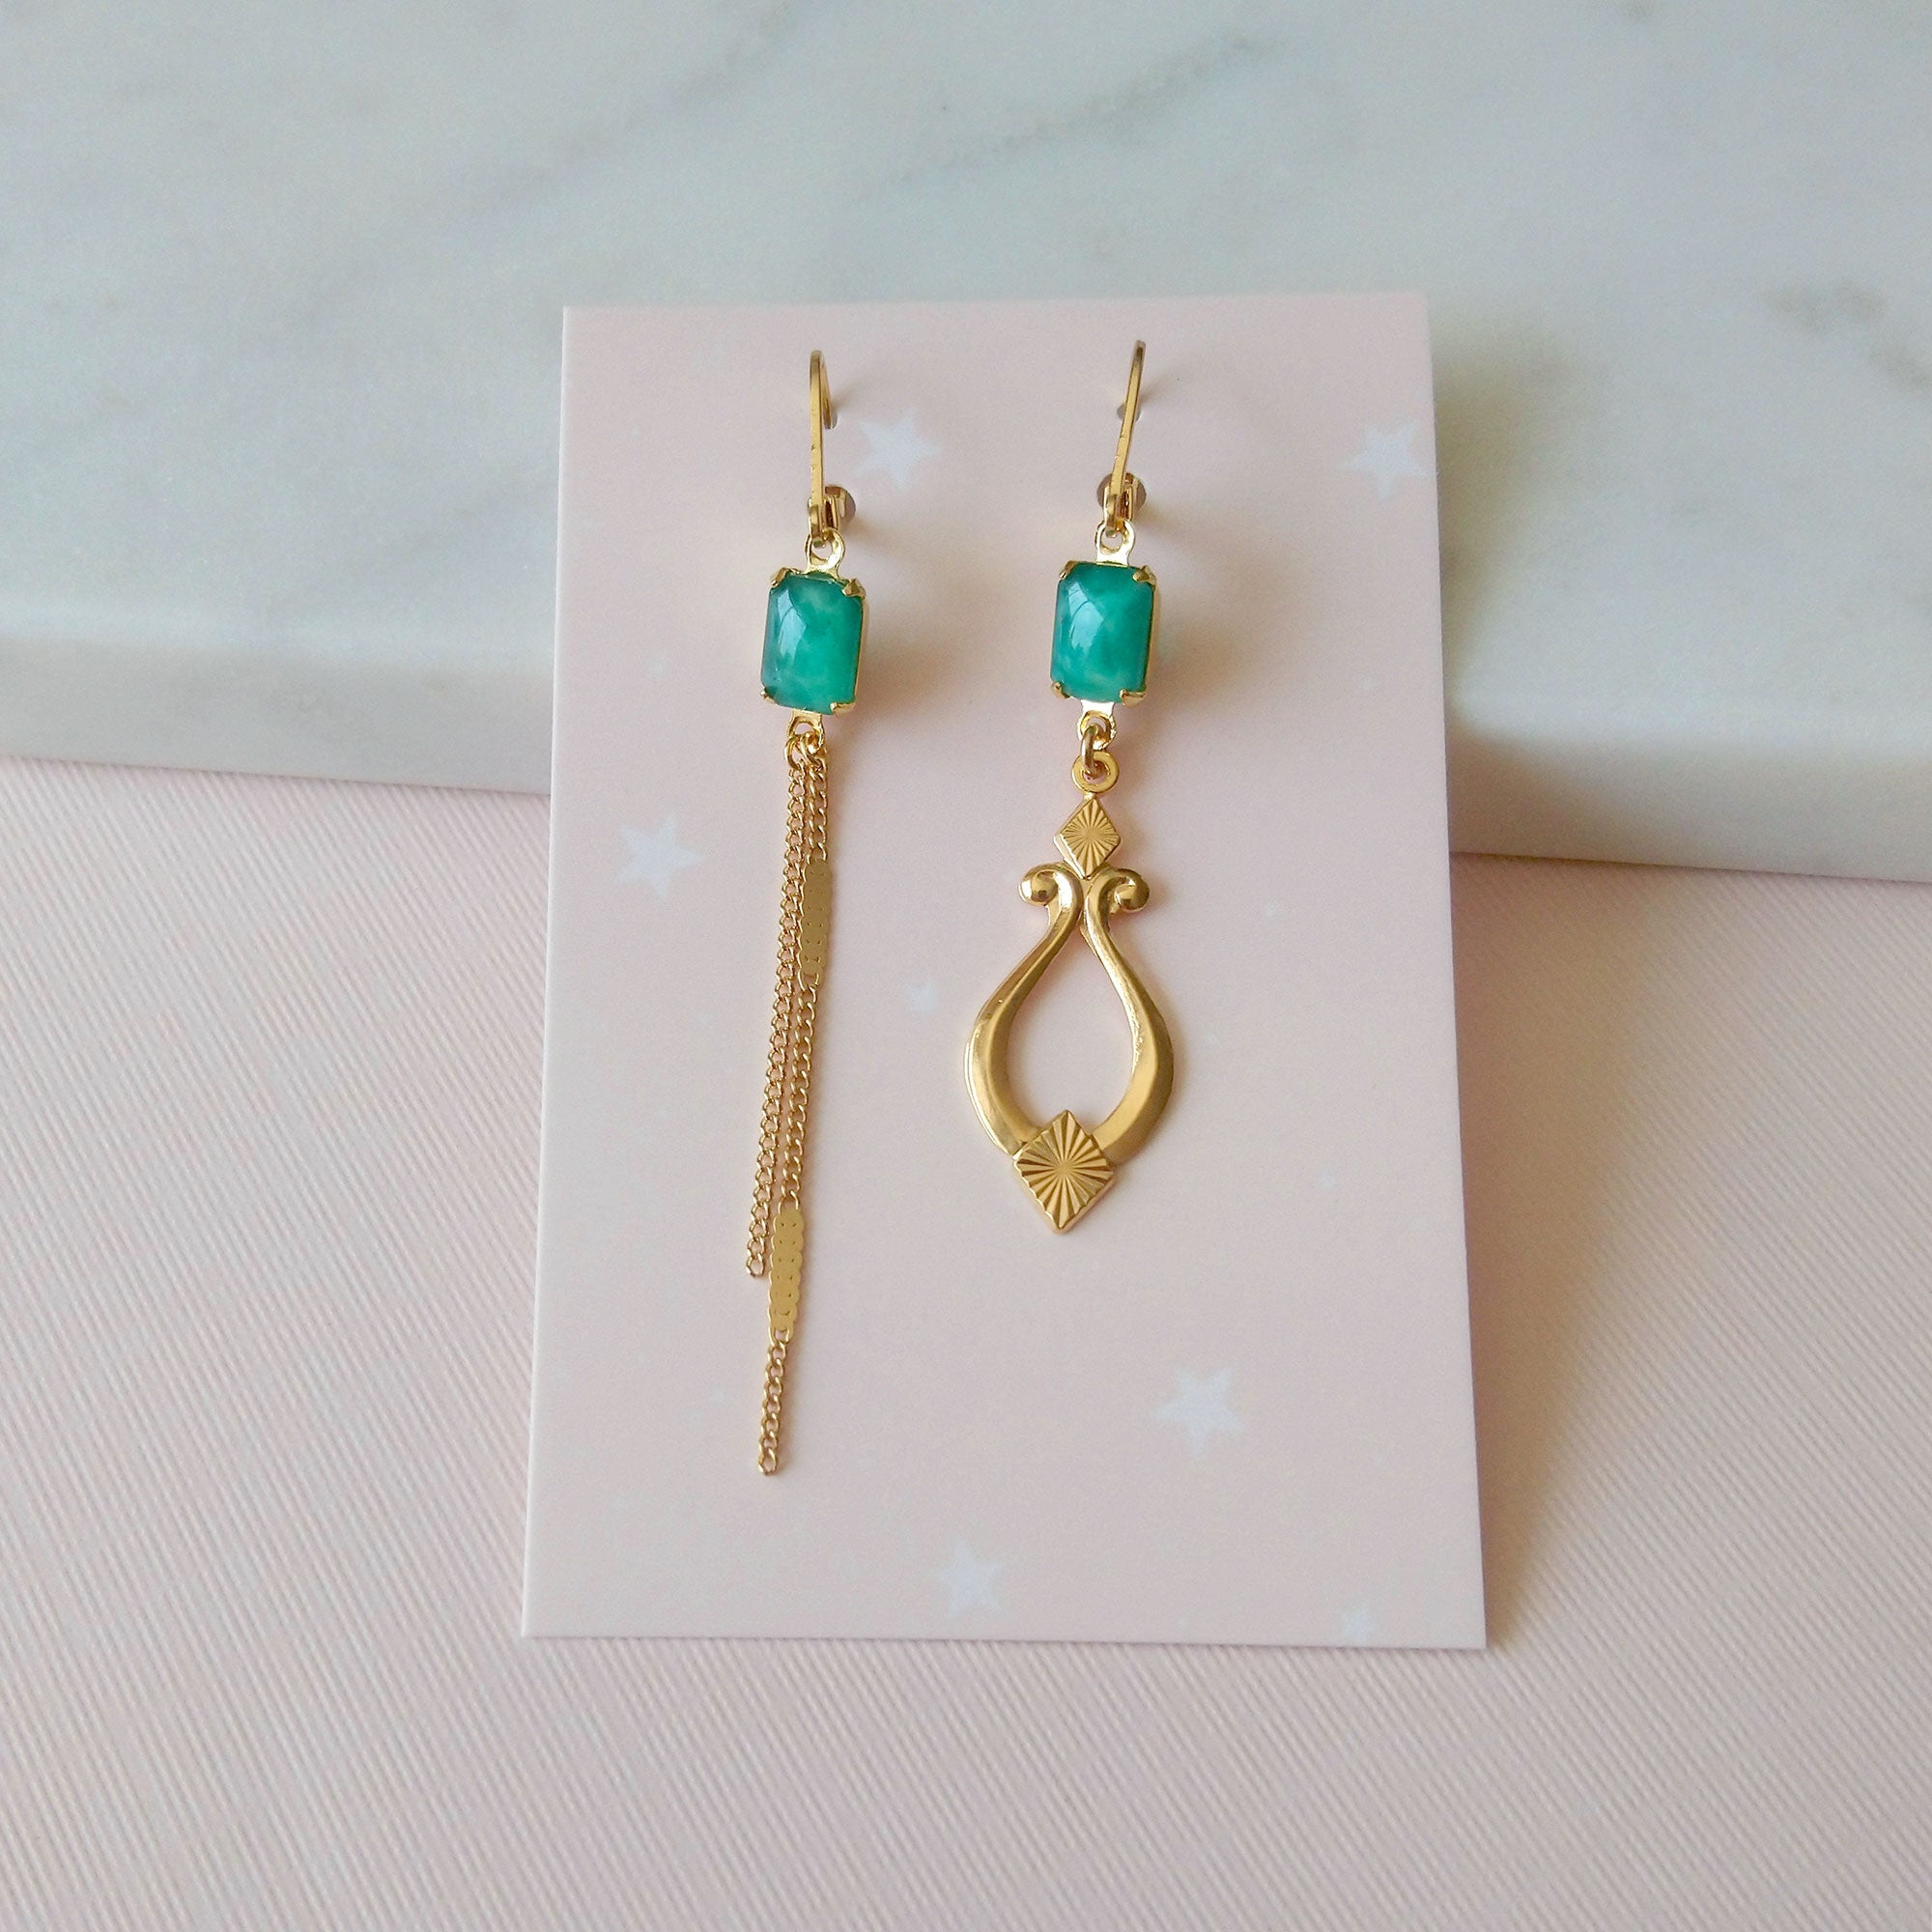 Sonate II Earrings in jade green (SD1552)